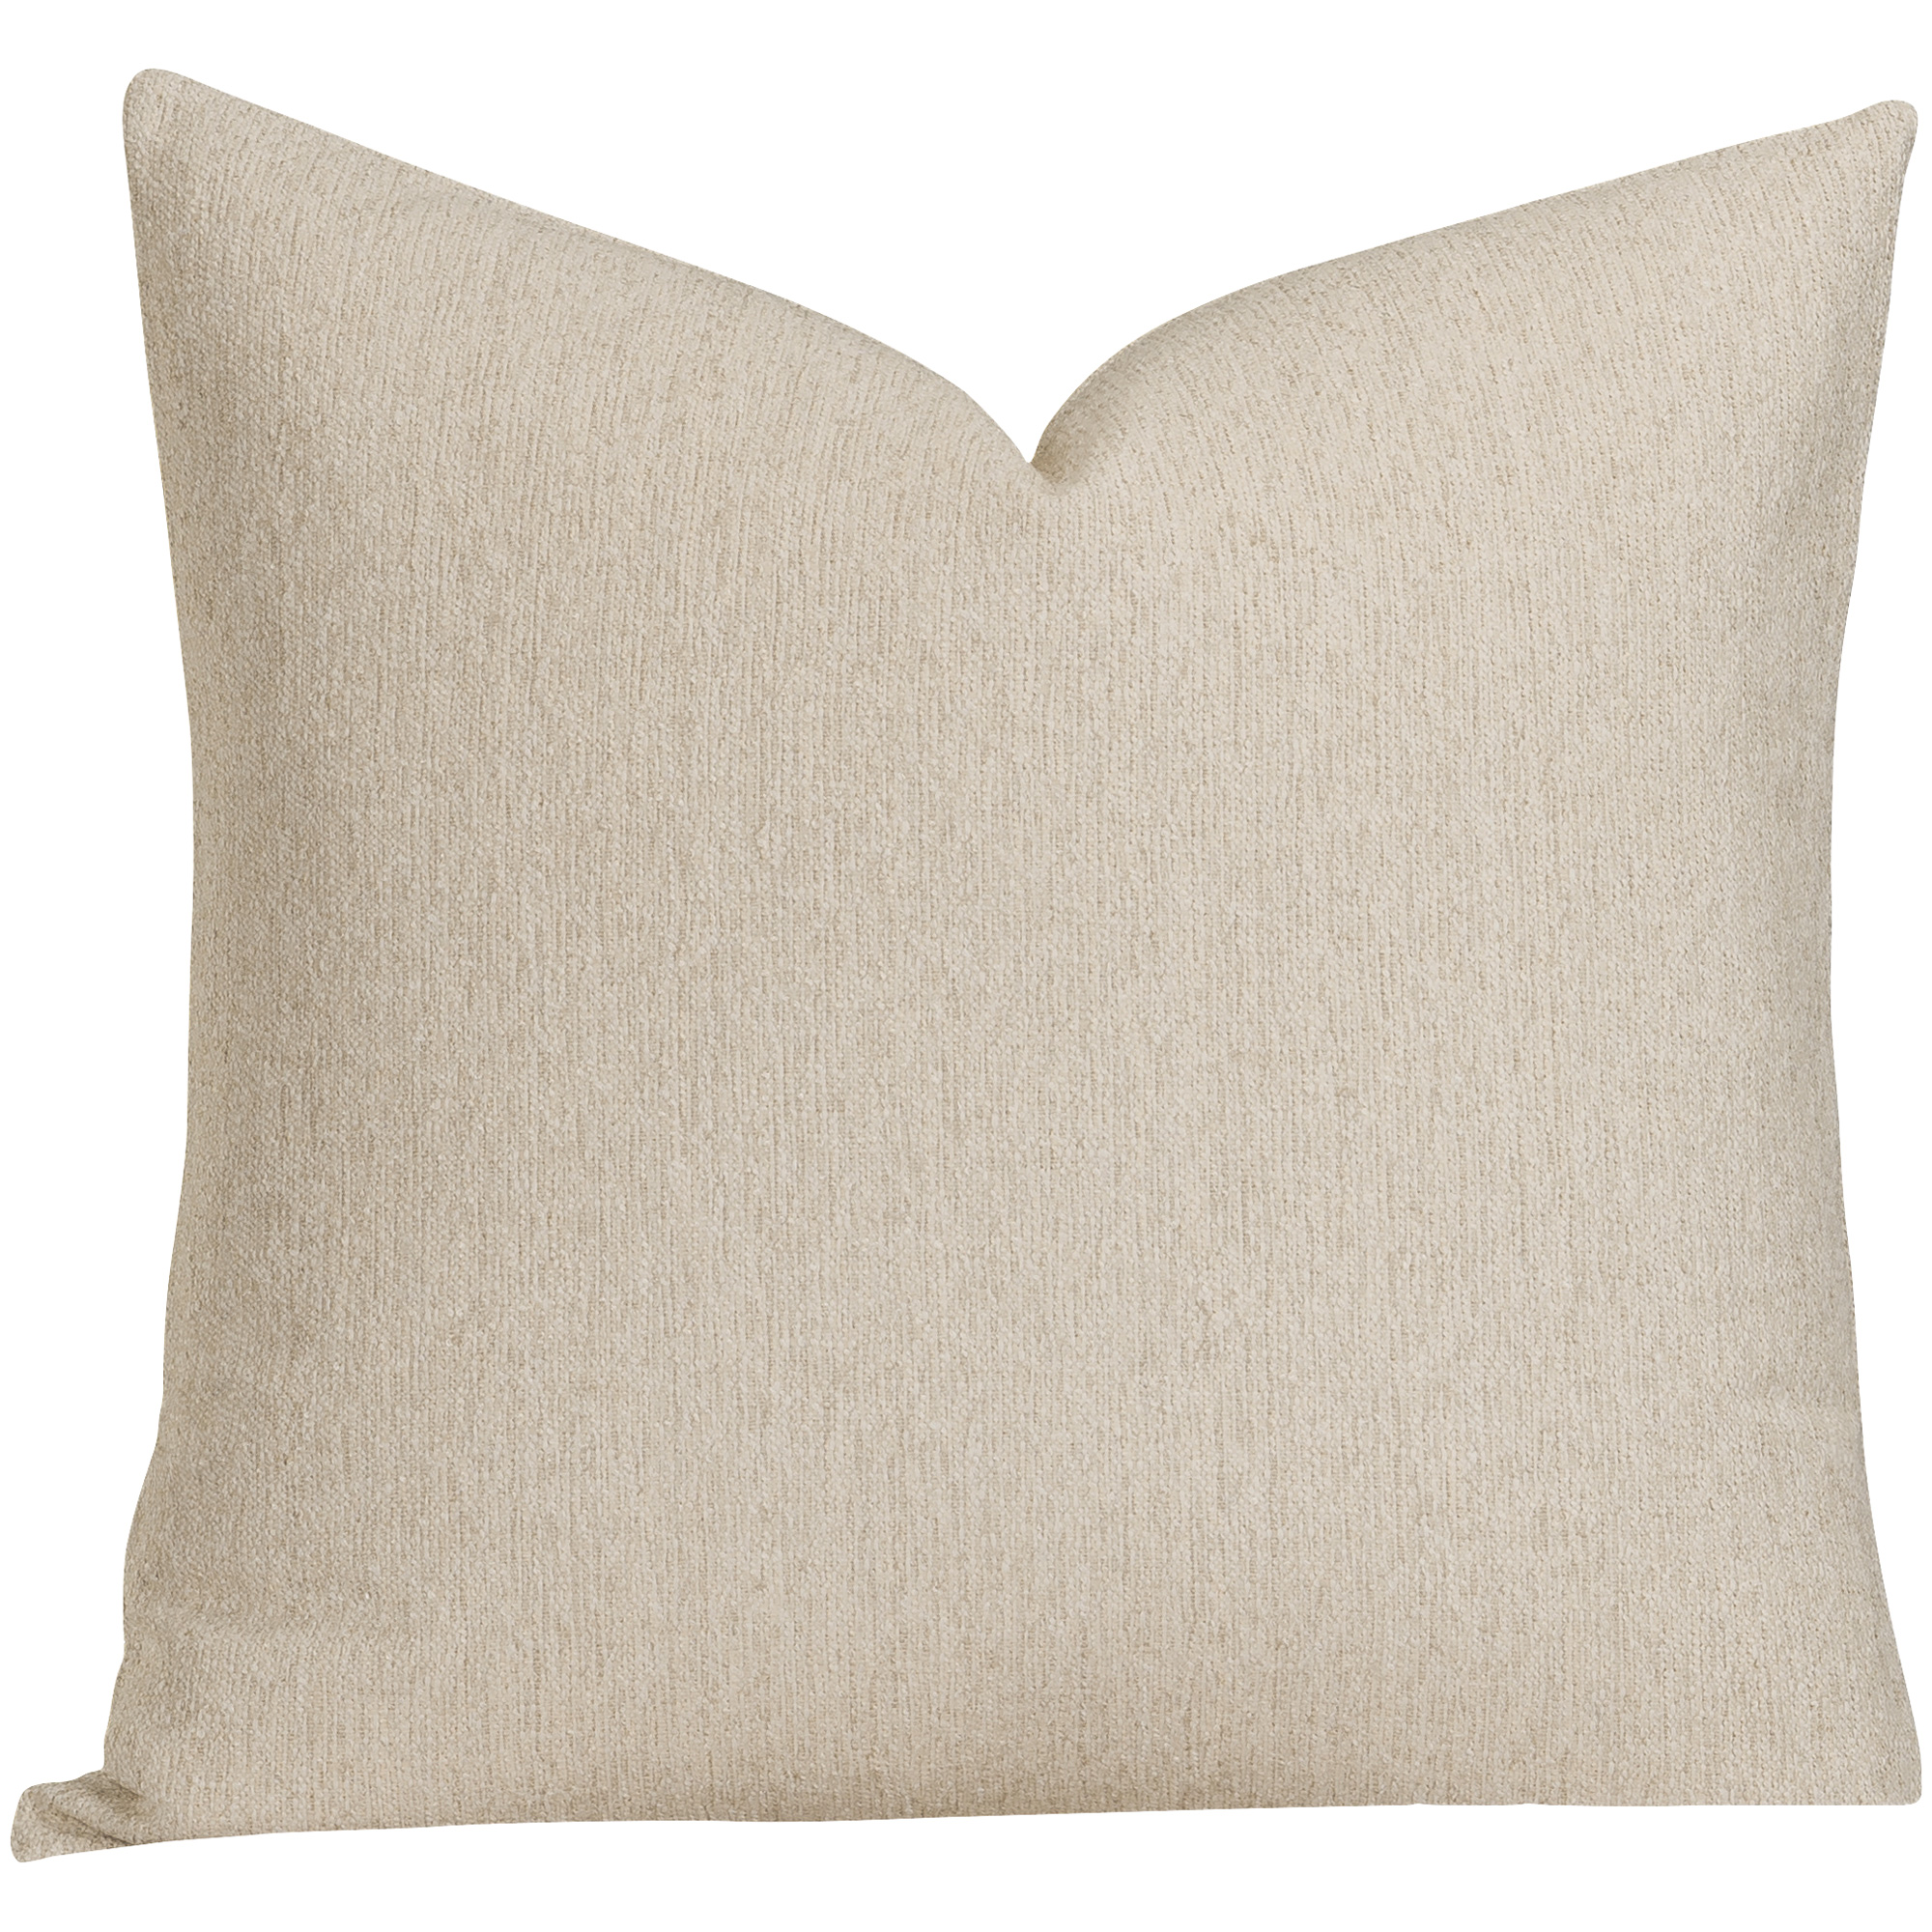 Sis Enterprises | Belmont Porcelain Euro Pillow